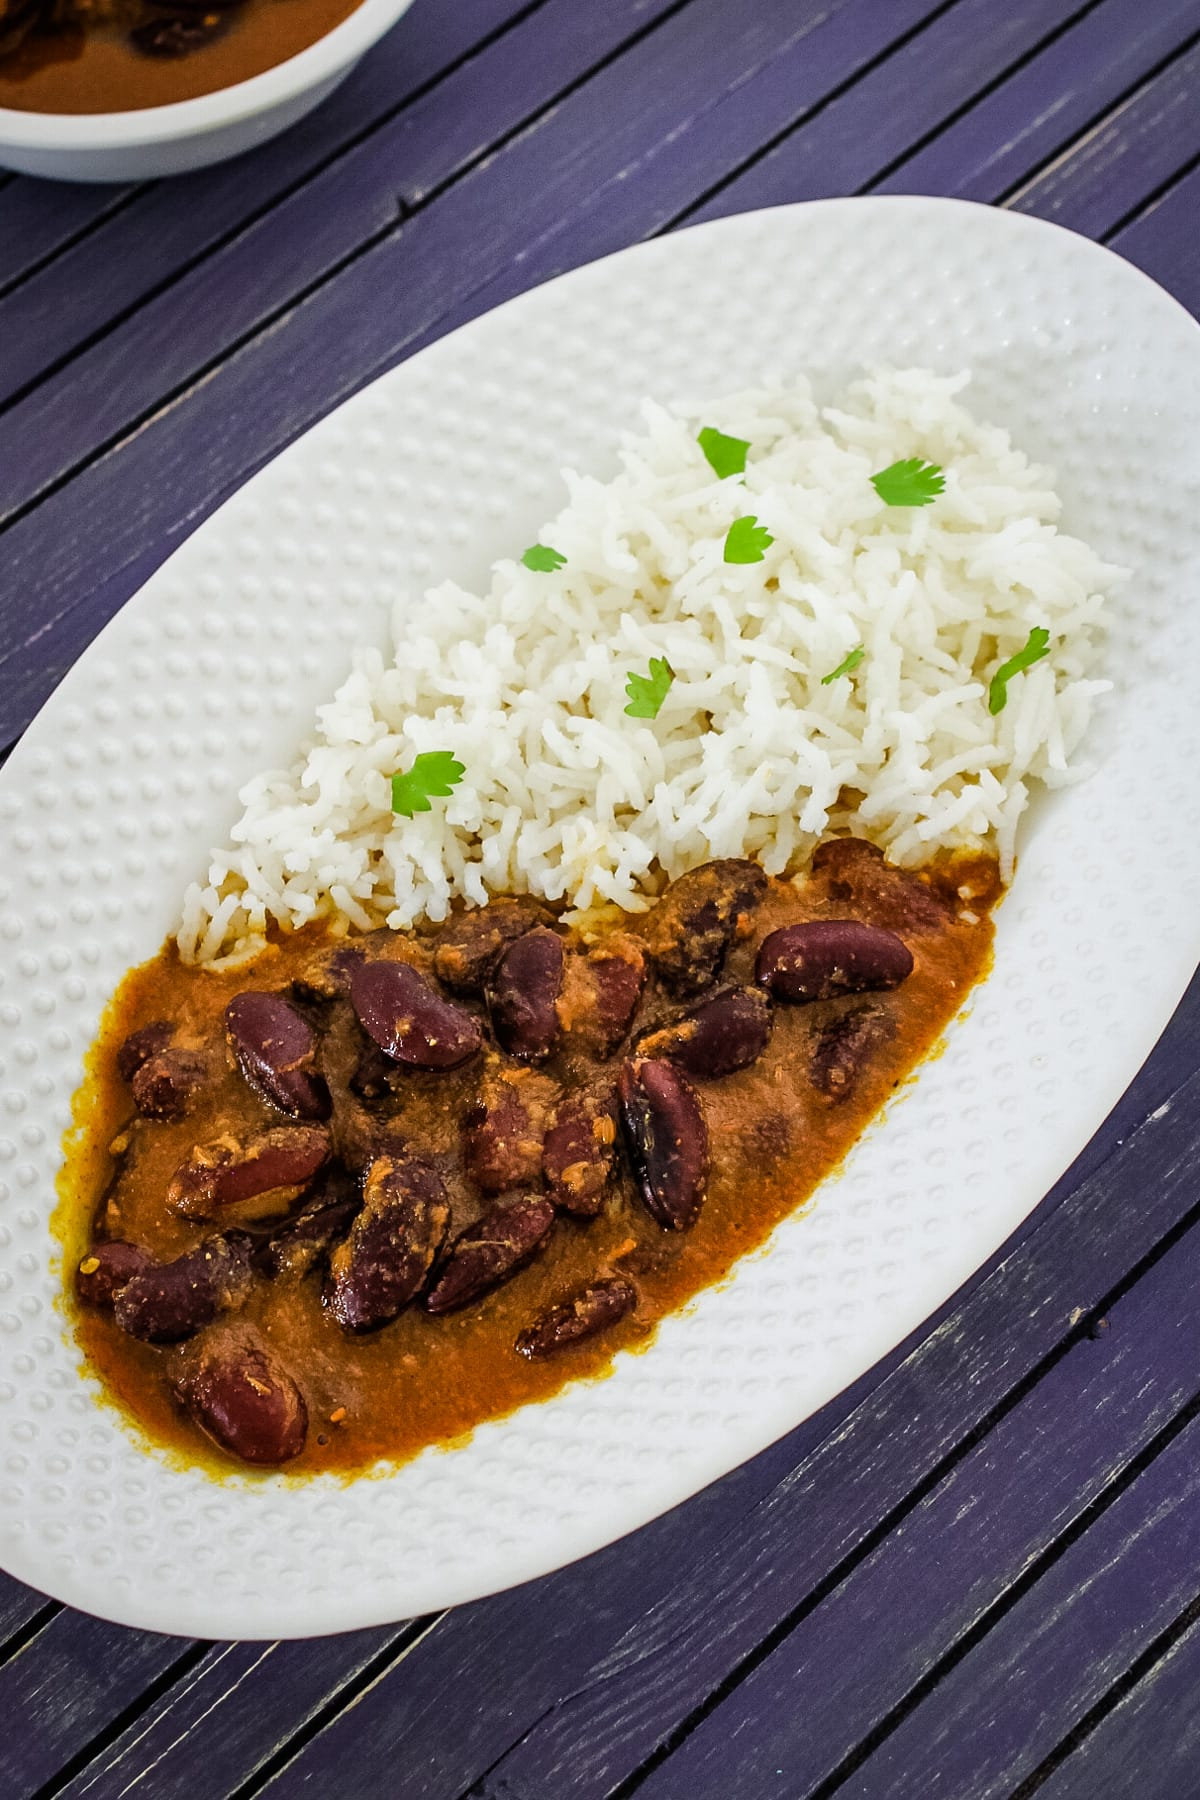 Rajma chawal served in oval plate, garnished with cilantro.